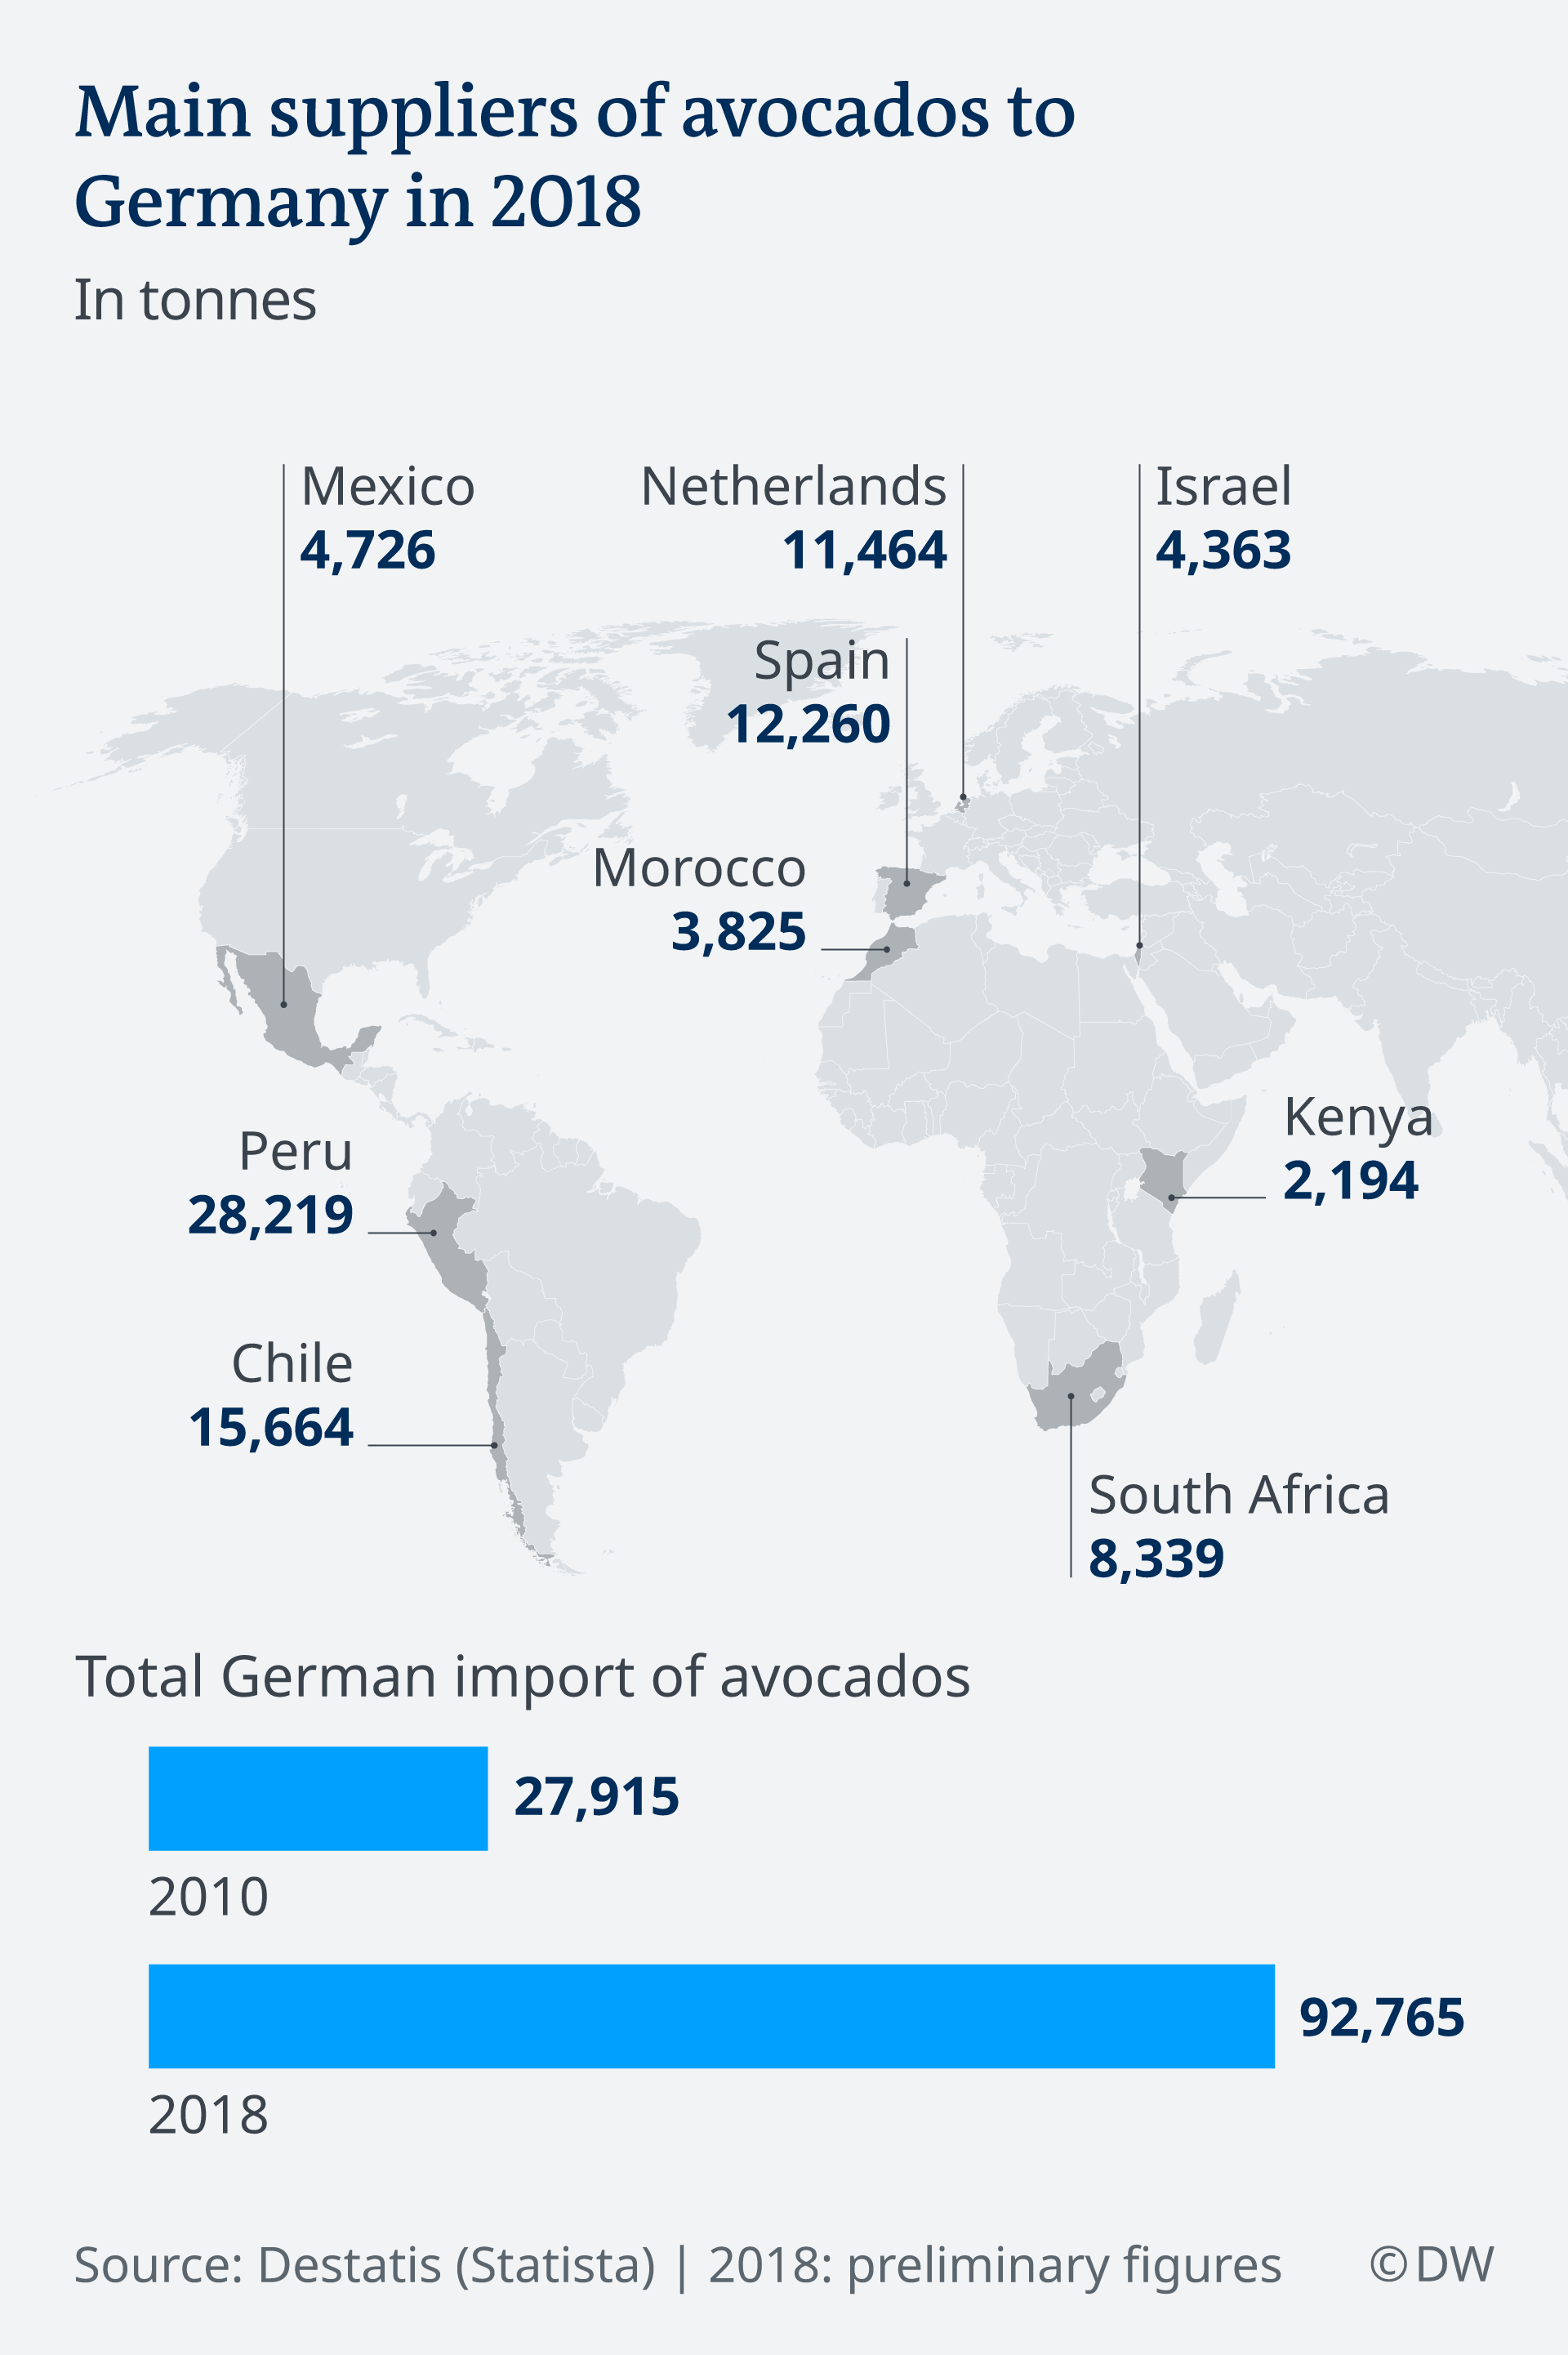 Main suppliers of avocados to Germany